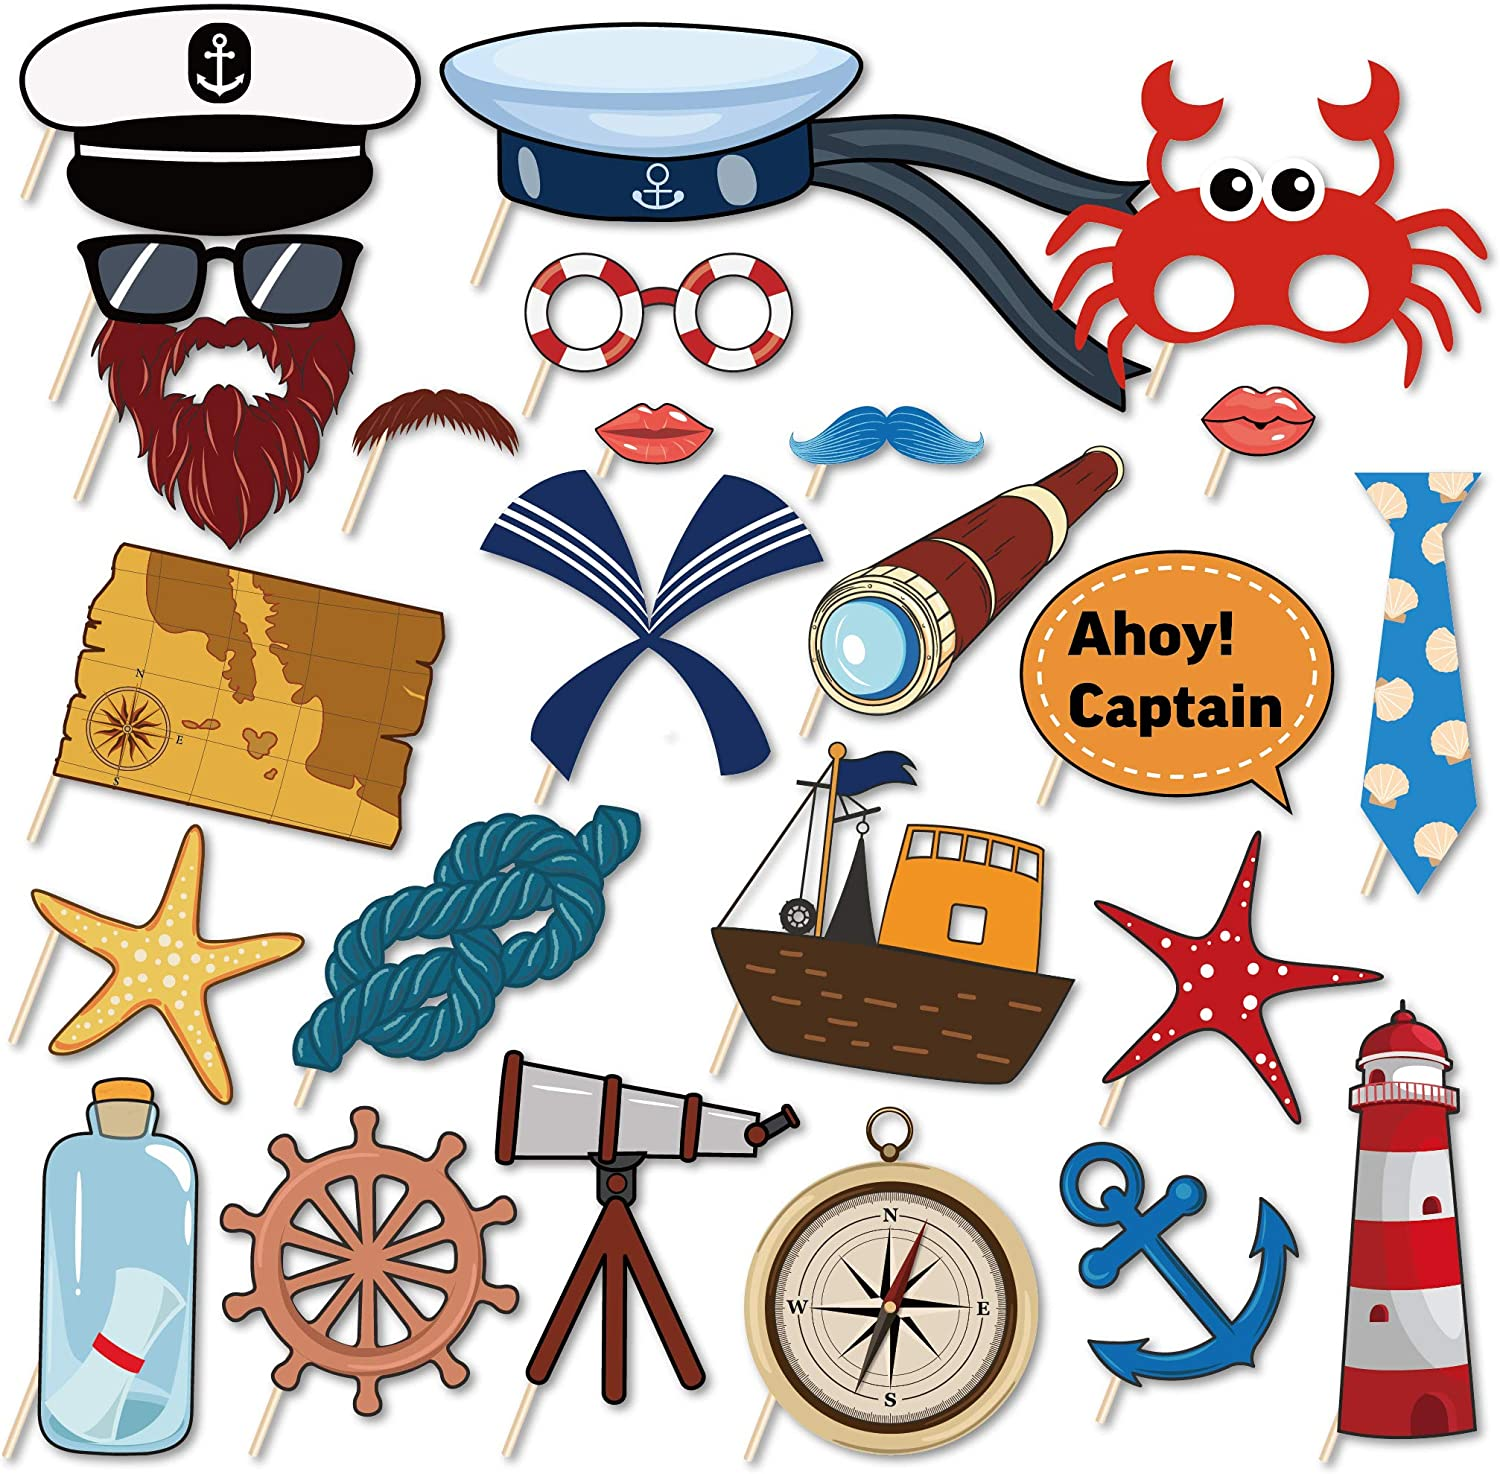 Kristin Paradise 25Pcs Nautical Photo Booth Props with Stick, Ahoy Boy Theme Selfie Props, Sailor Birthday Party Supplies, Cruise Anchor Sailboat Yacht Photography Backdrop Decorations